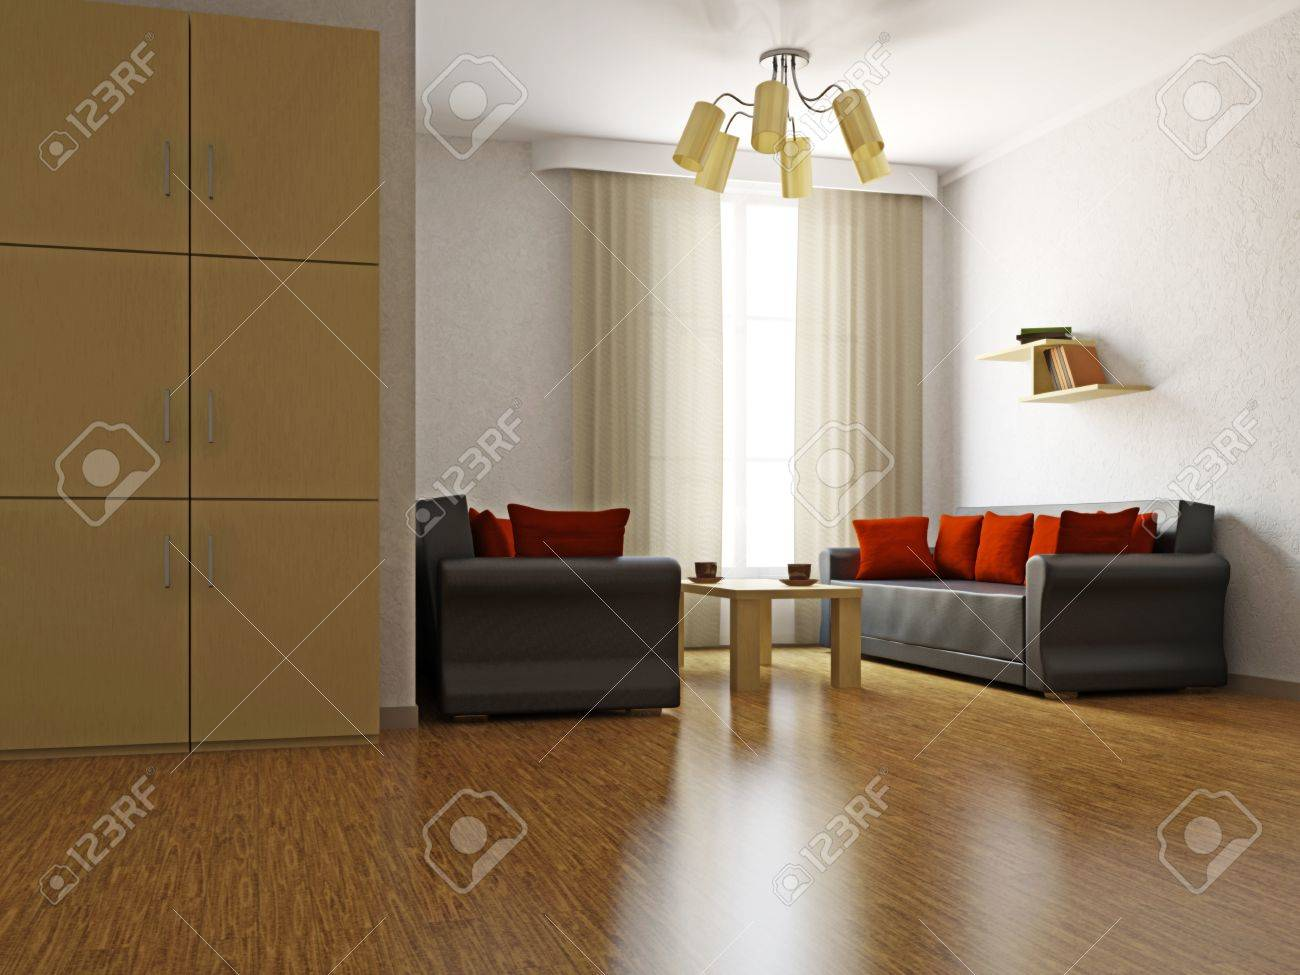 Livingroom with sofas and a table near  the window Stock Photo - 16430109